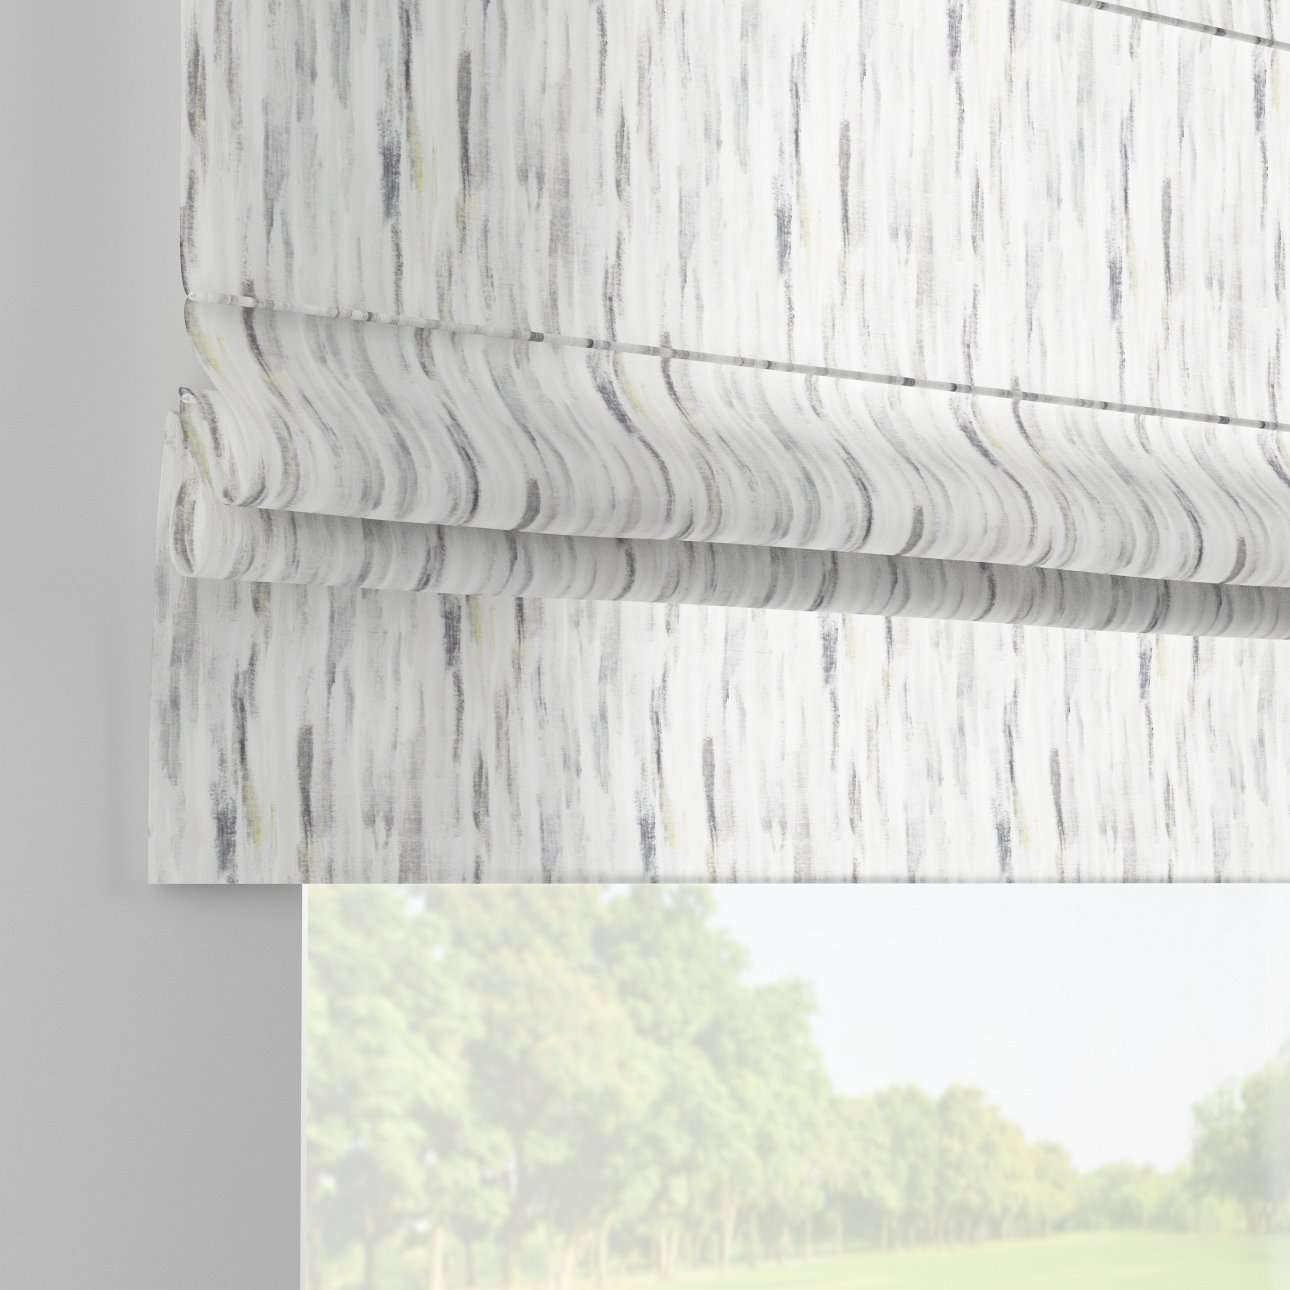 Padva roman blind  80 x 170 cm (31.5 x 67 inch) in collection Aquarelle, fabric: 140-66